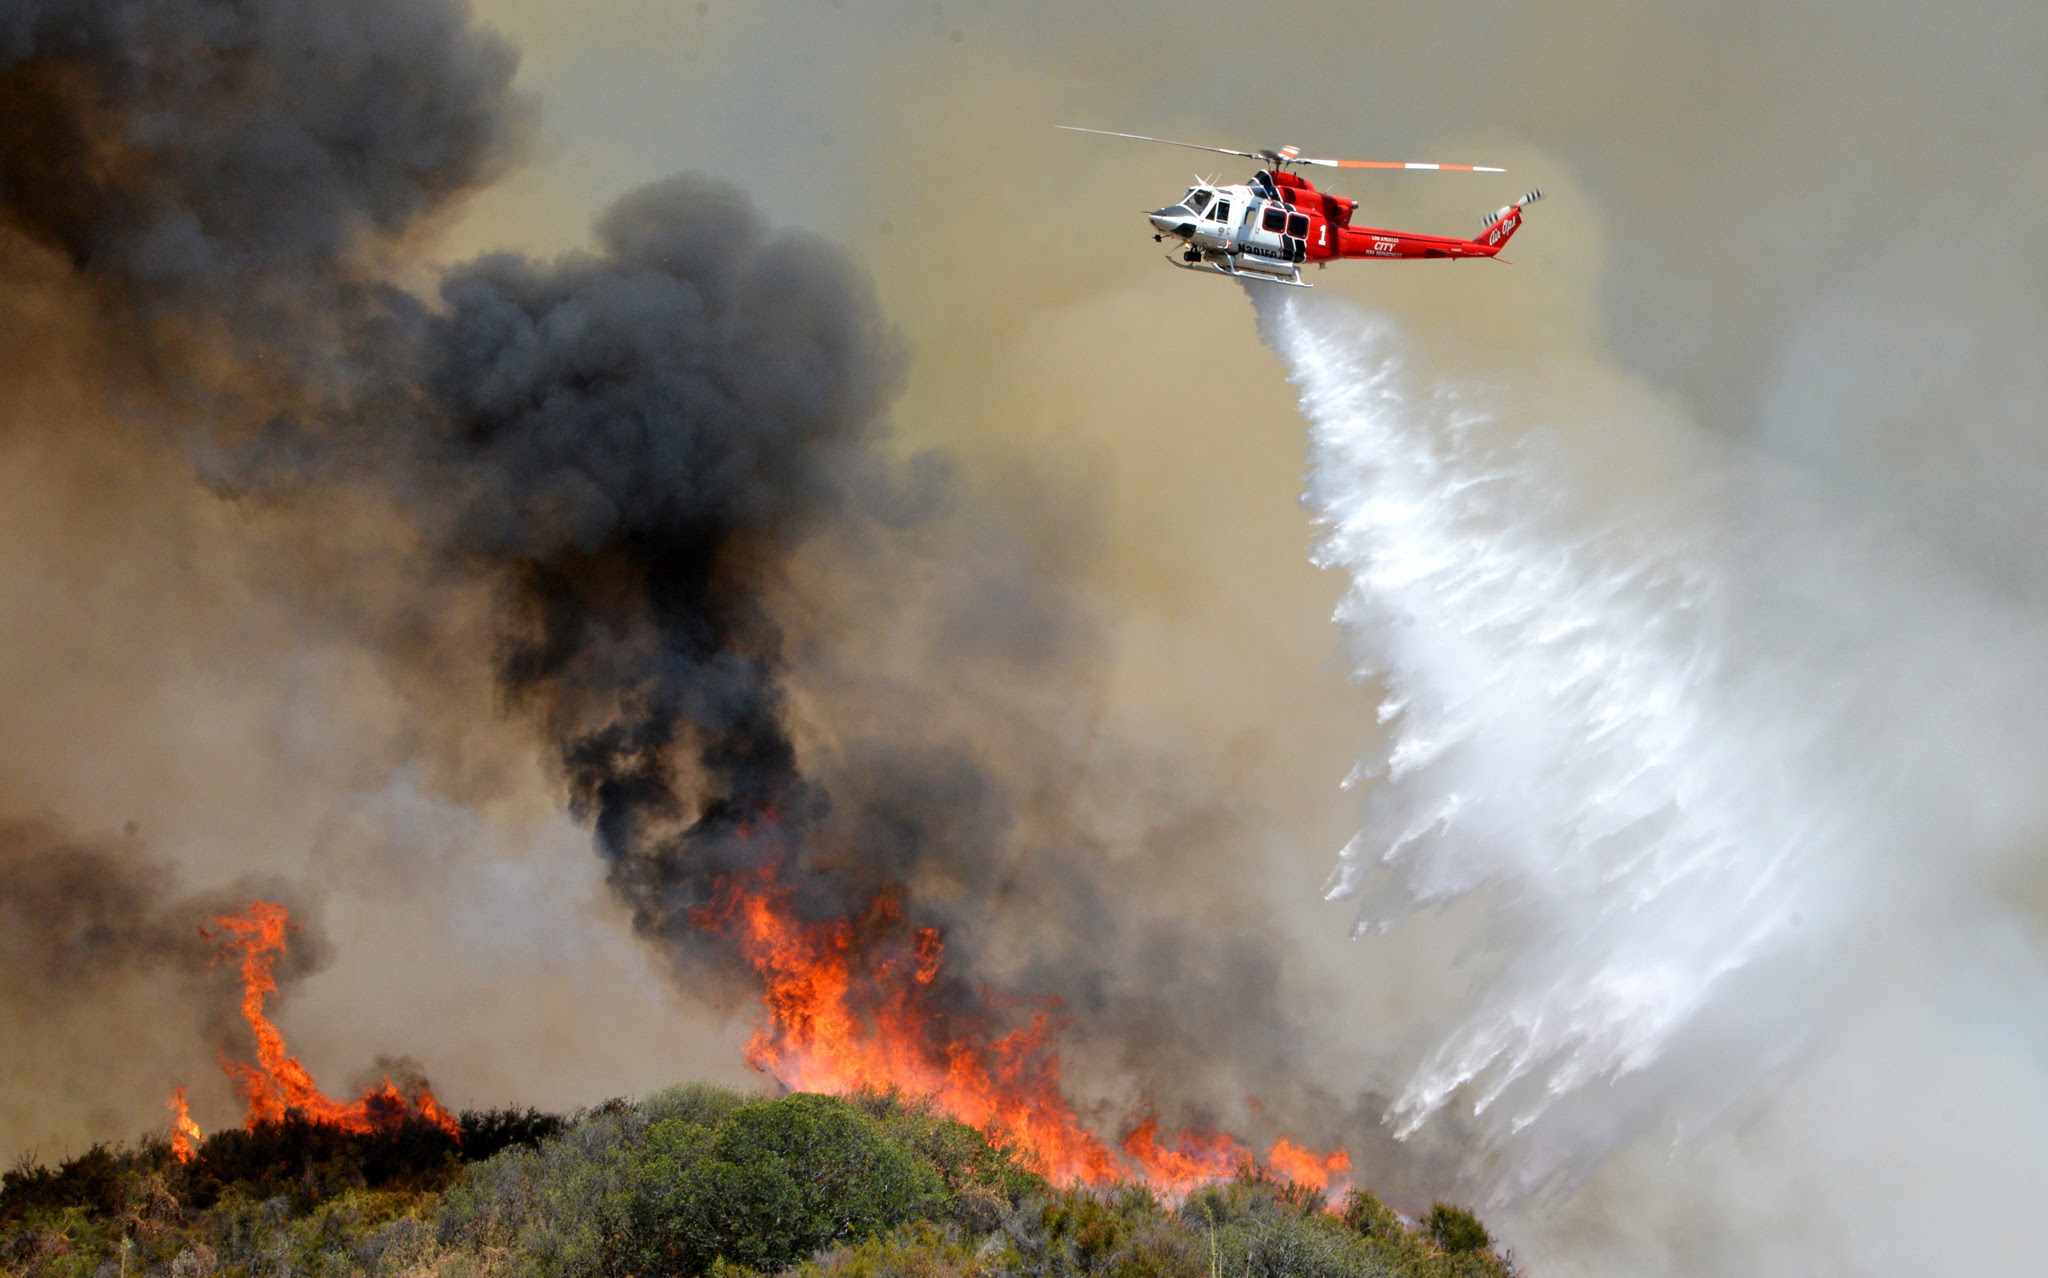 A Los Angeles City Fire helicopter drops water on a wildfire in Santa Clarita, Calif. About 1,000 people have been evacuated from homes as a 100-acre wildfire burns through brushy canyonlands north of Los Angeles